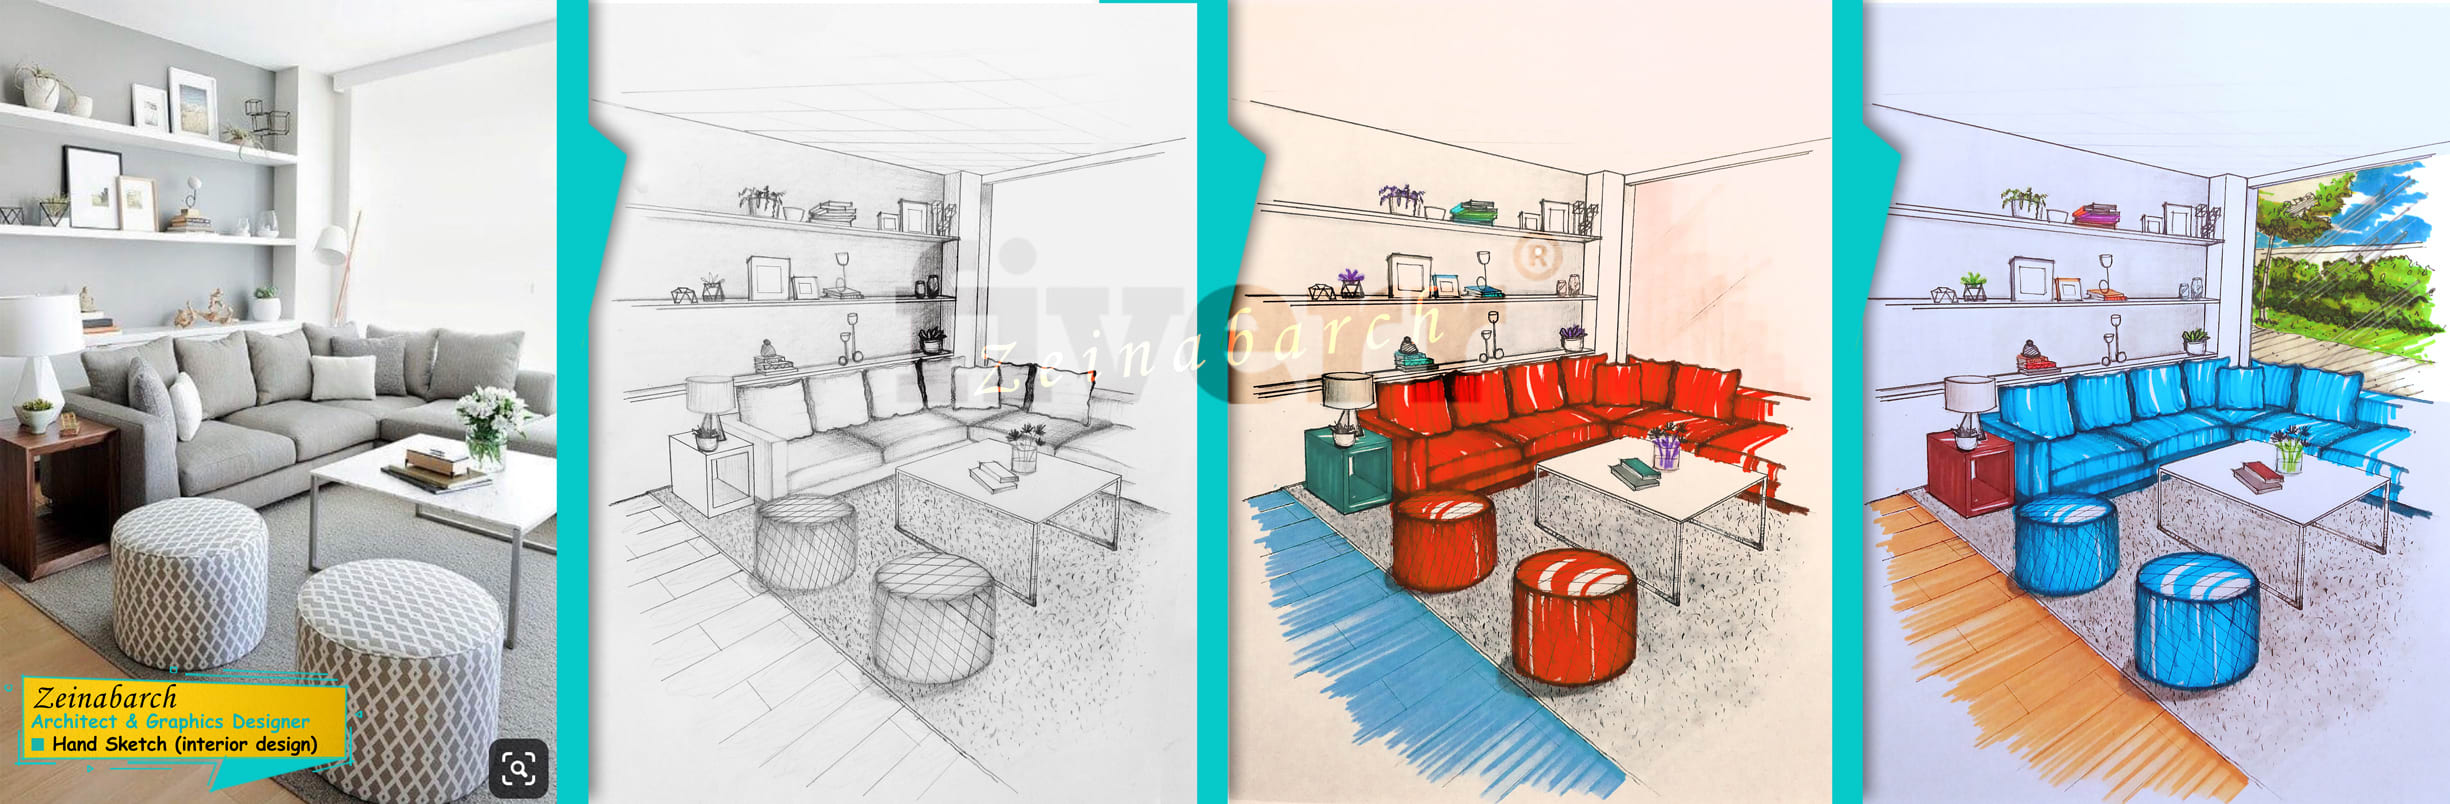 Draw Interior Architectural Hand Sketch As You Love With Pencil And Marker By Zeinabarch